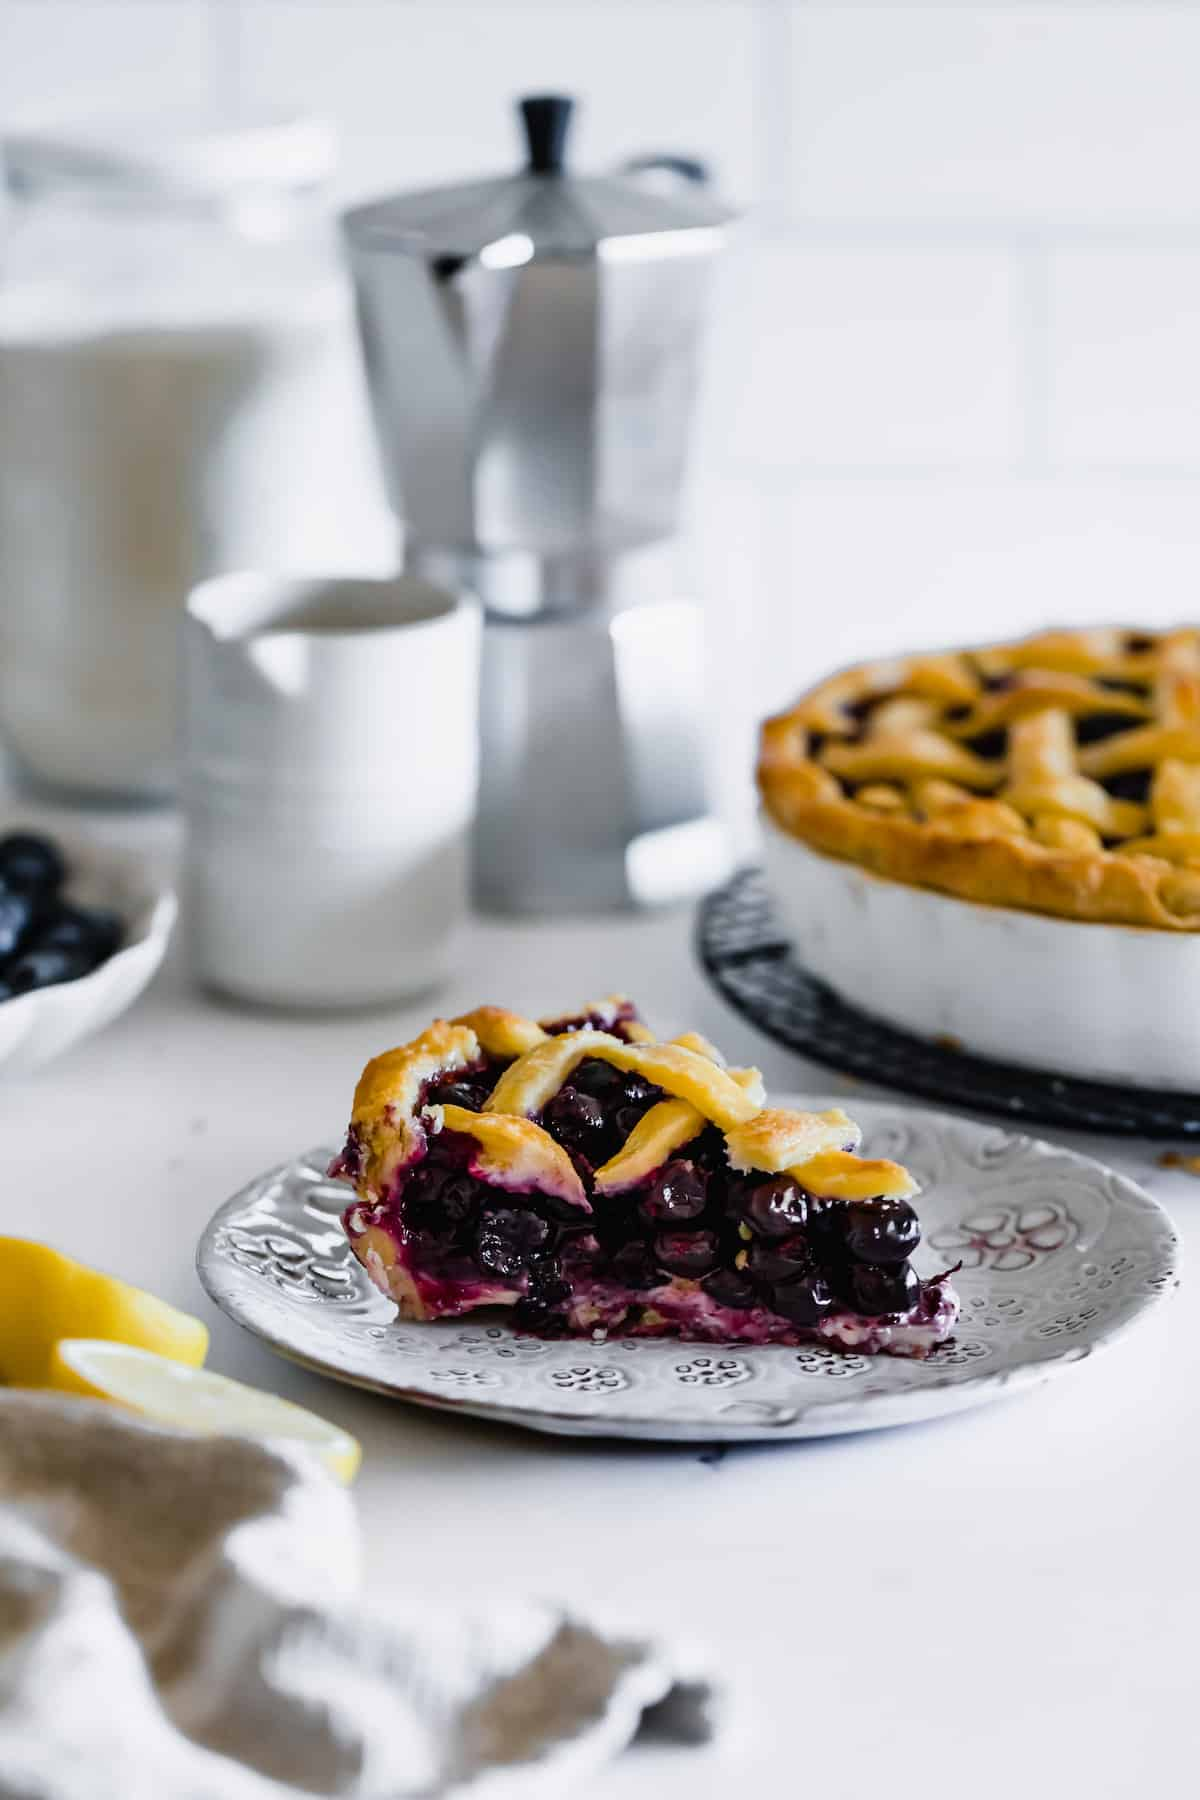 A Slice of Blueberry Pie on a Plate with the Full Pie in a Pan Behind It